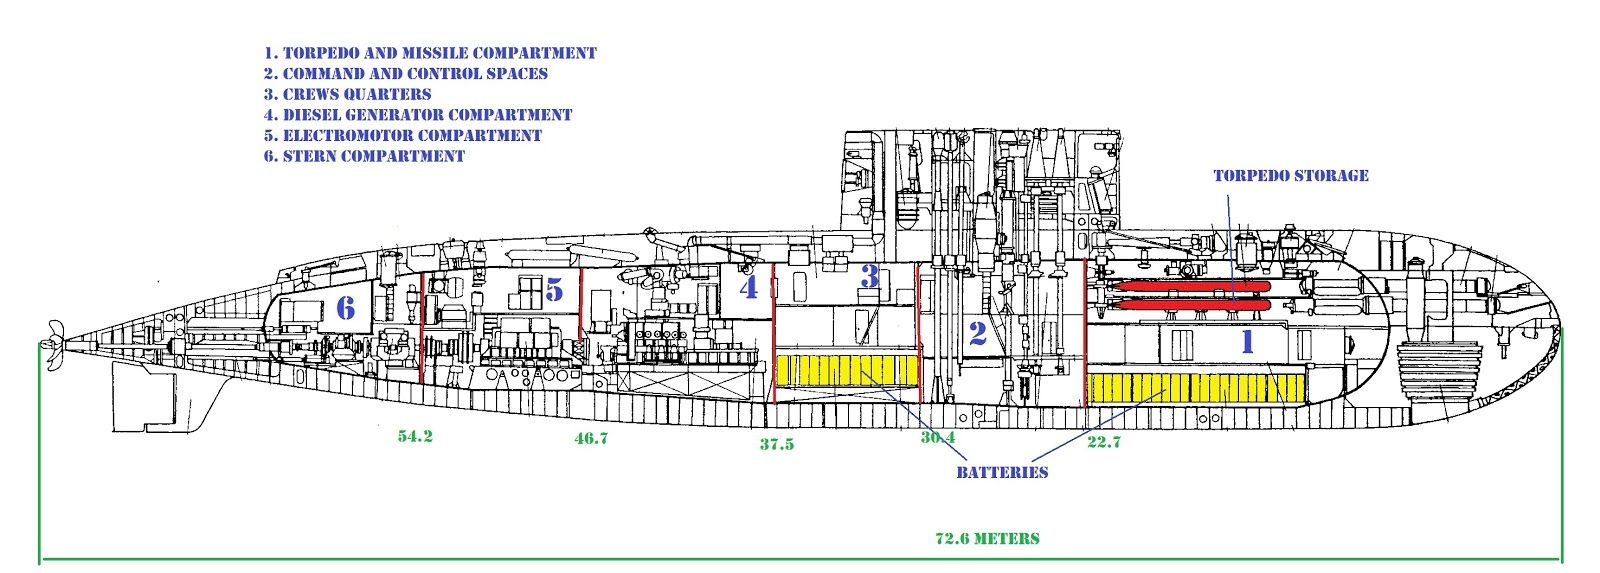 hight resolution of image result for kilo class submarine plans